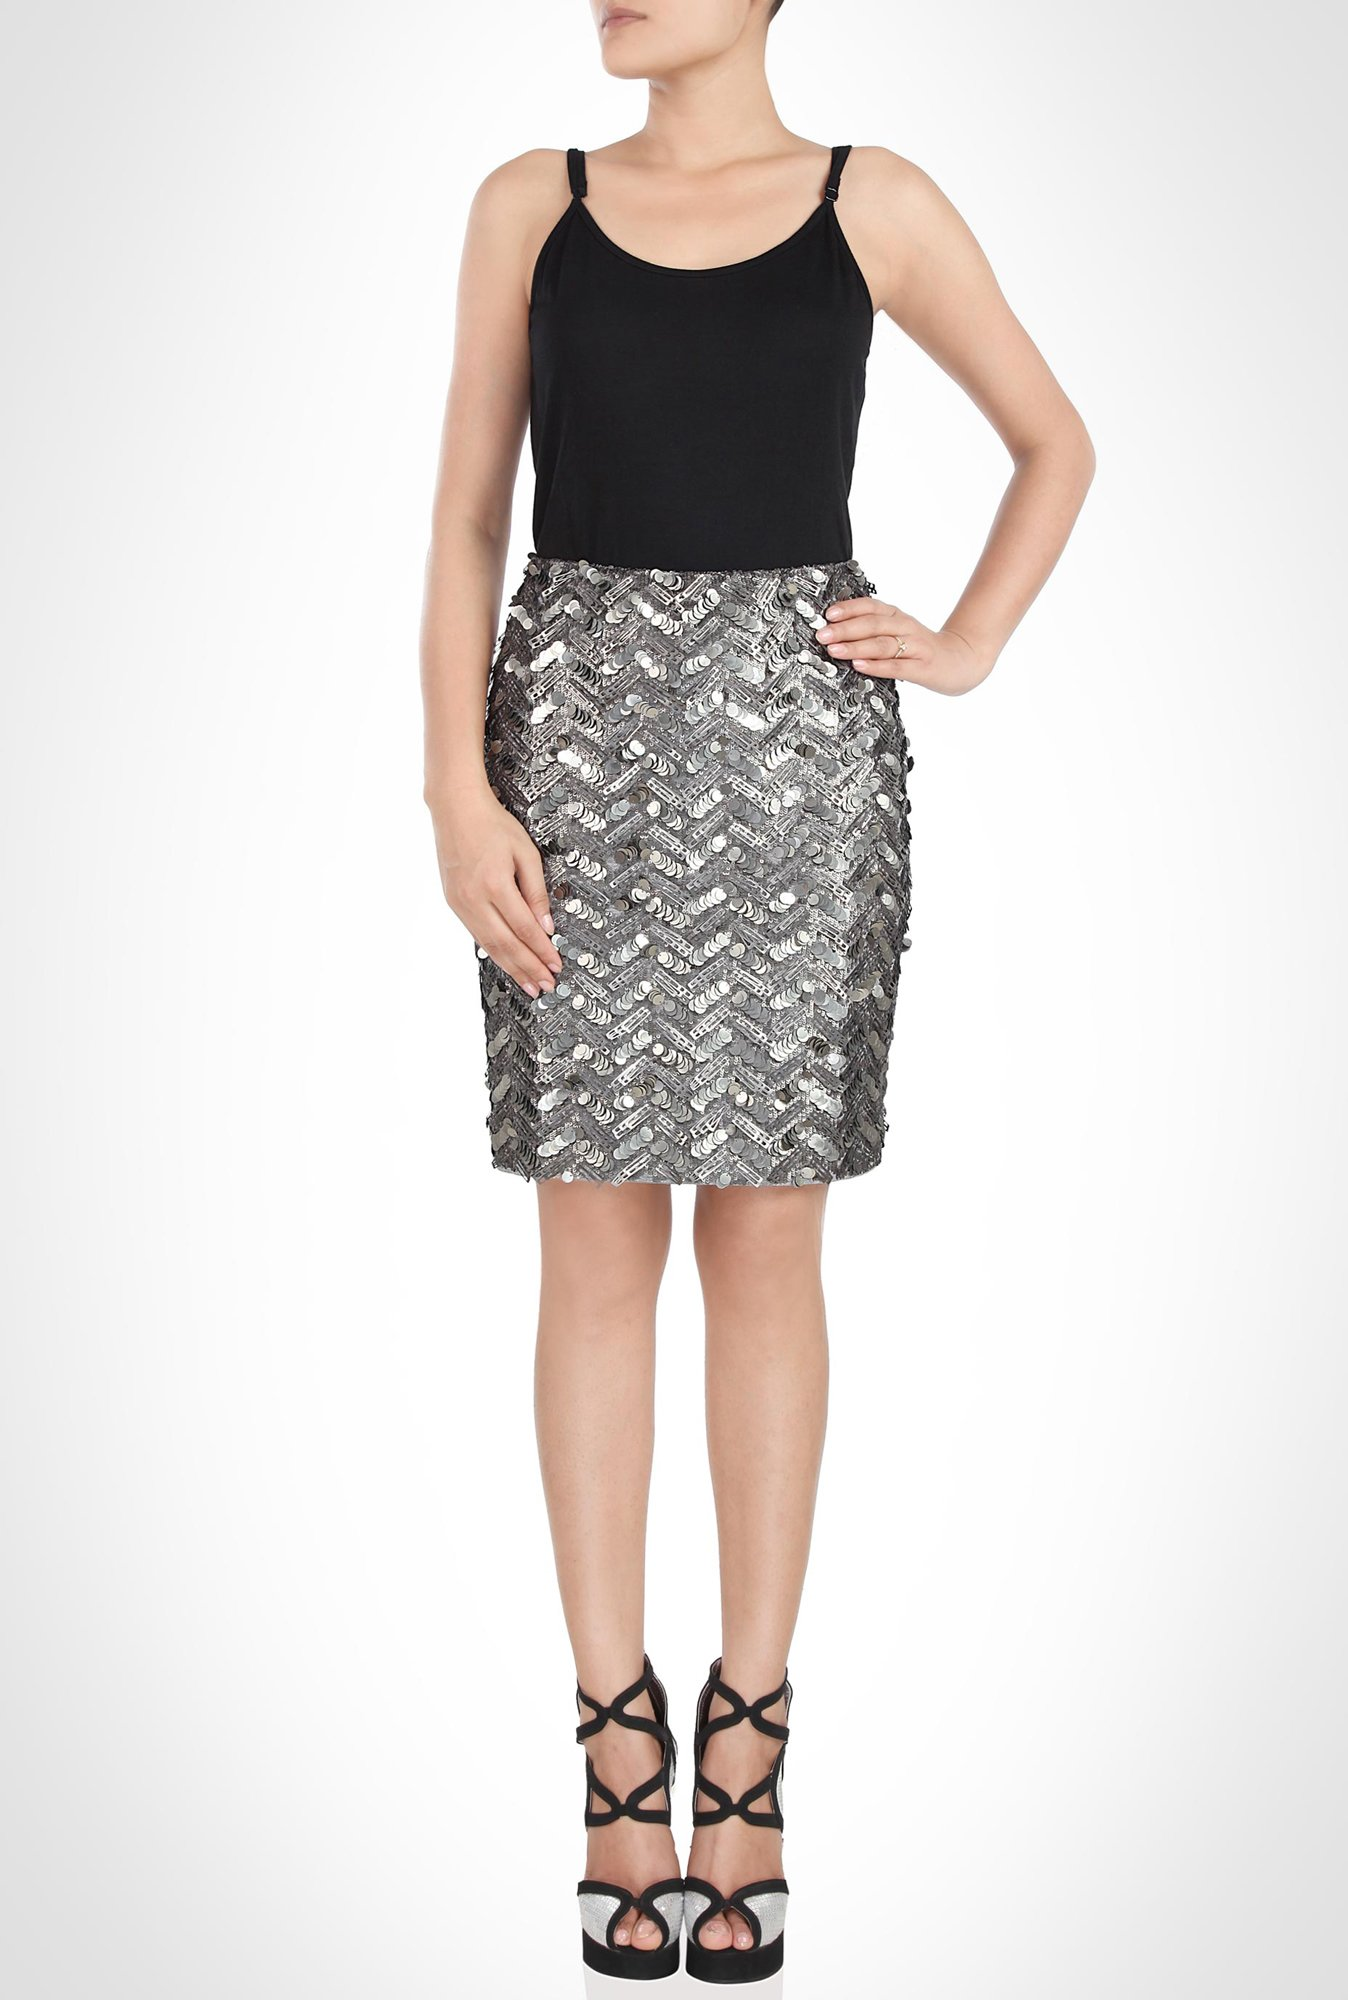 Soigne K Designer Silver Sequined Skirt by Kimaya